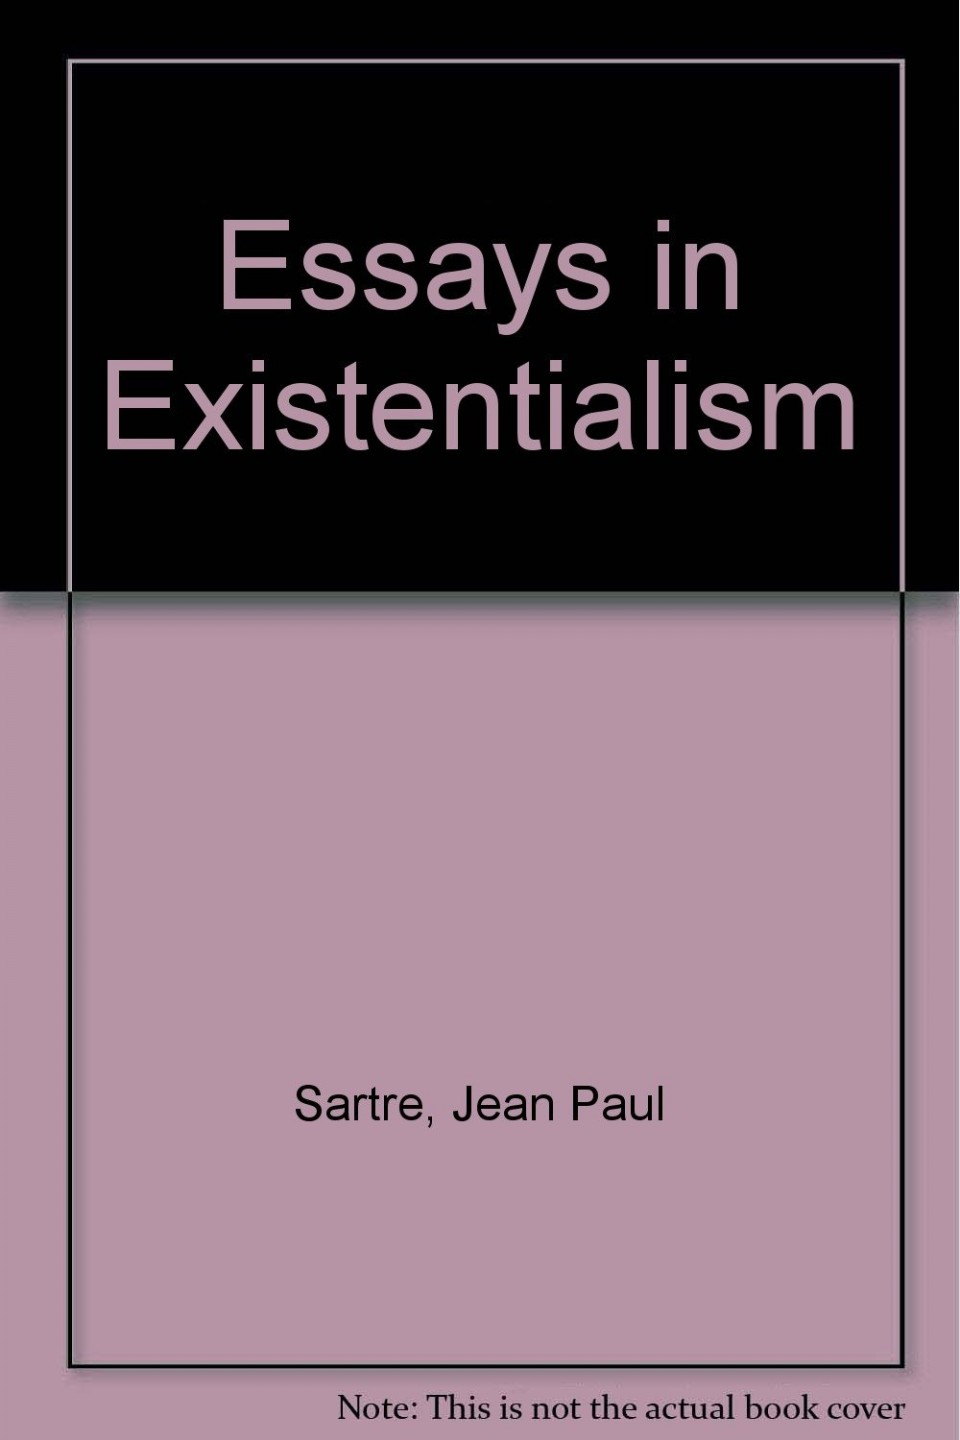 002 61qllswwwgl Essay Example Essays In Outstanding Existentialism Sartre Tumblr Clarke Lexa 960